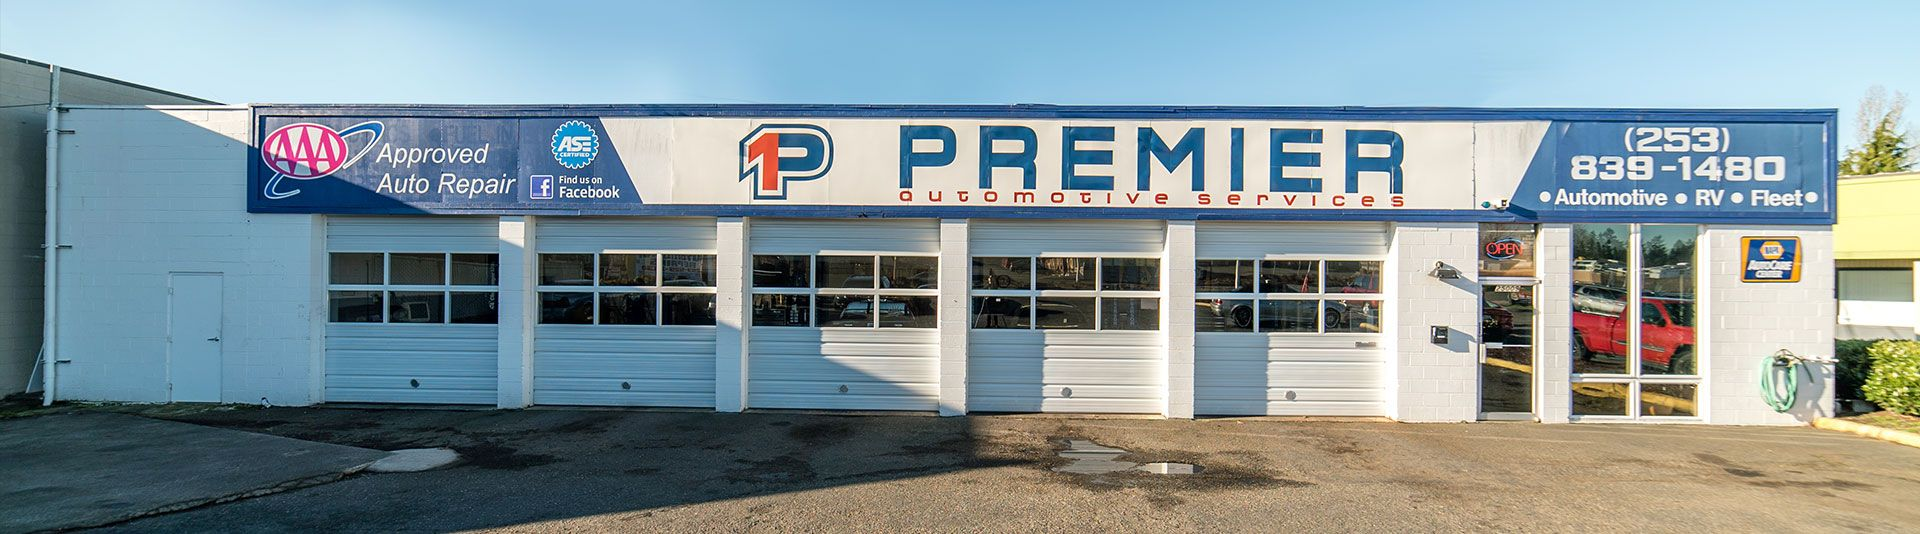 Premier Automotive Services